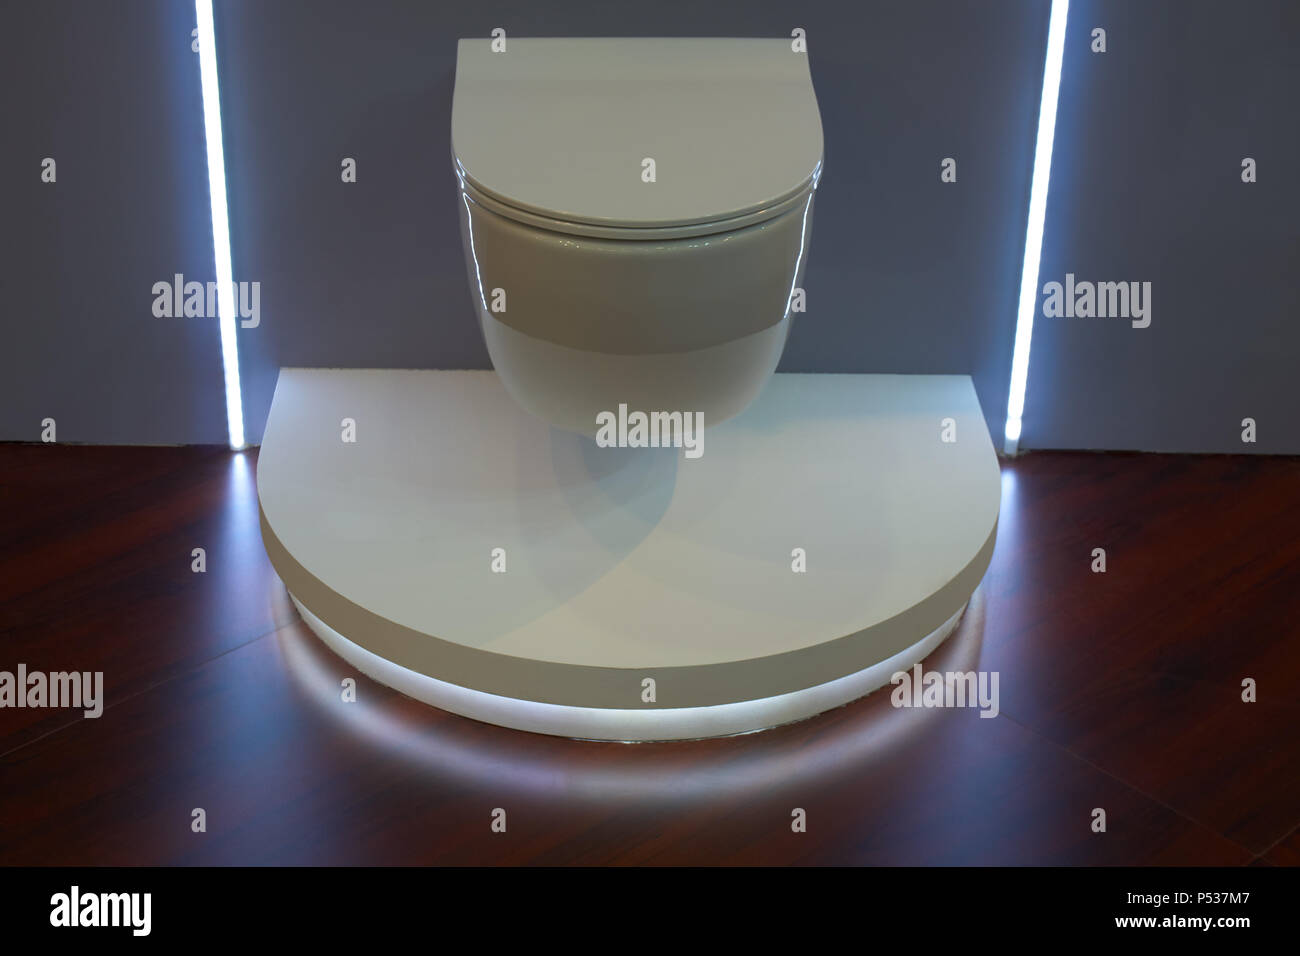 White modern led lit toilet in restroom - Stock Image